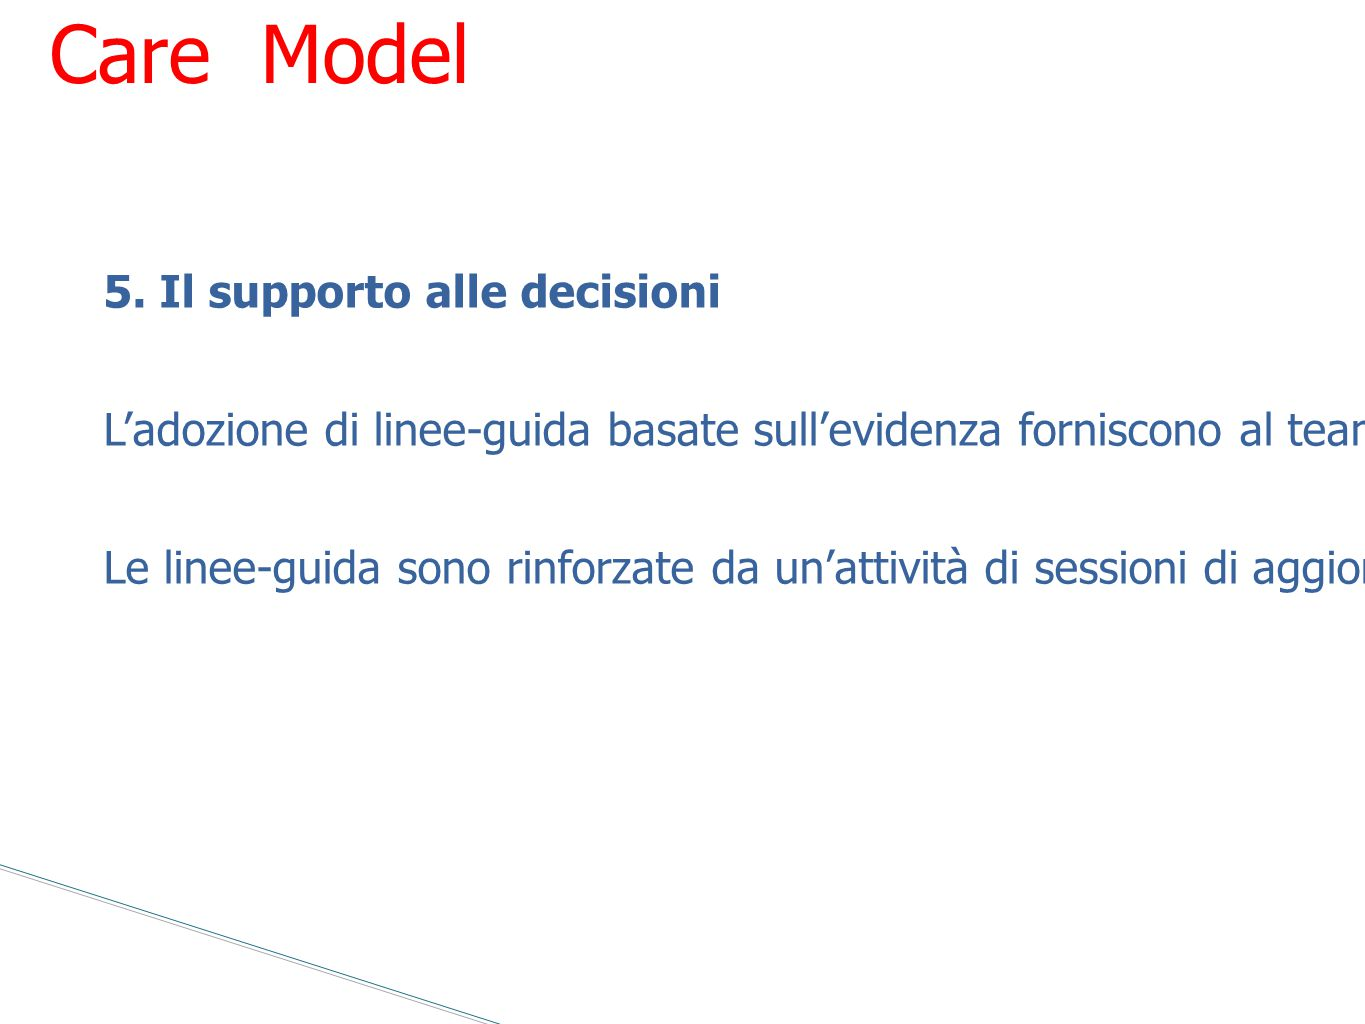 Chronic Care Model 5. Il supporto alle decisioni